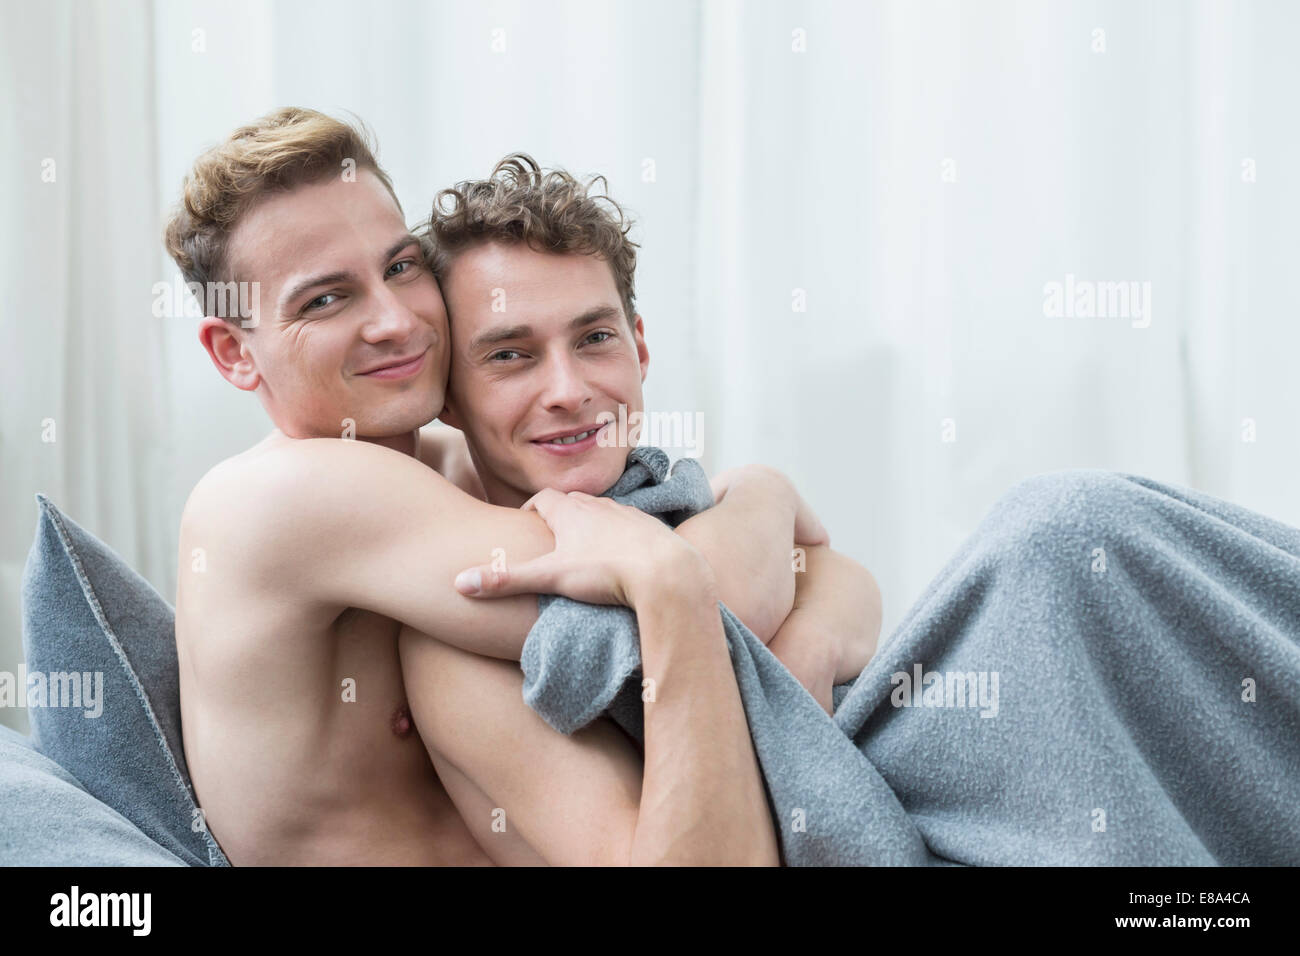 Portrait of homosexual couple embracing each other, smiling - Stock Image